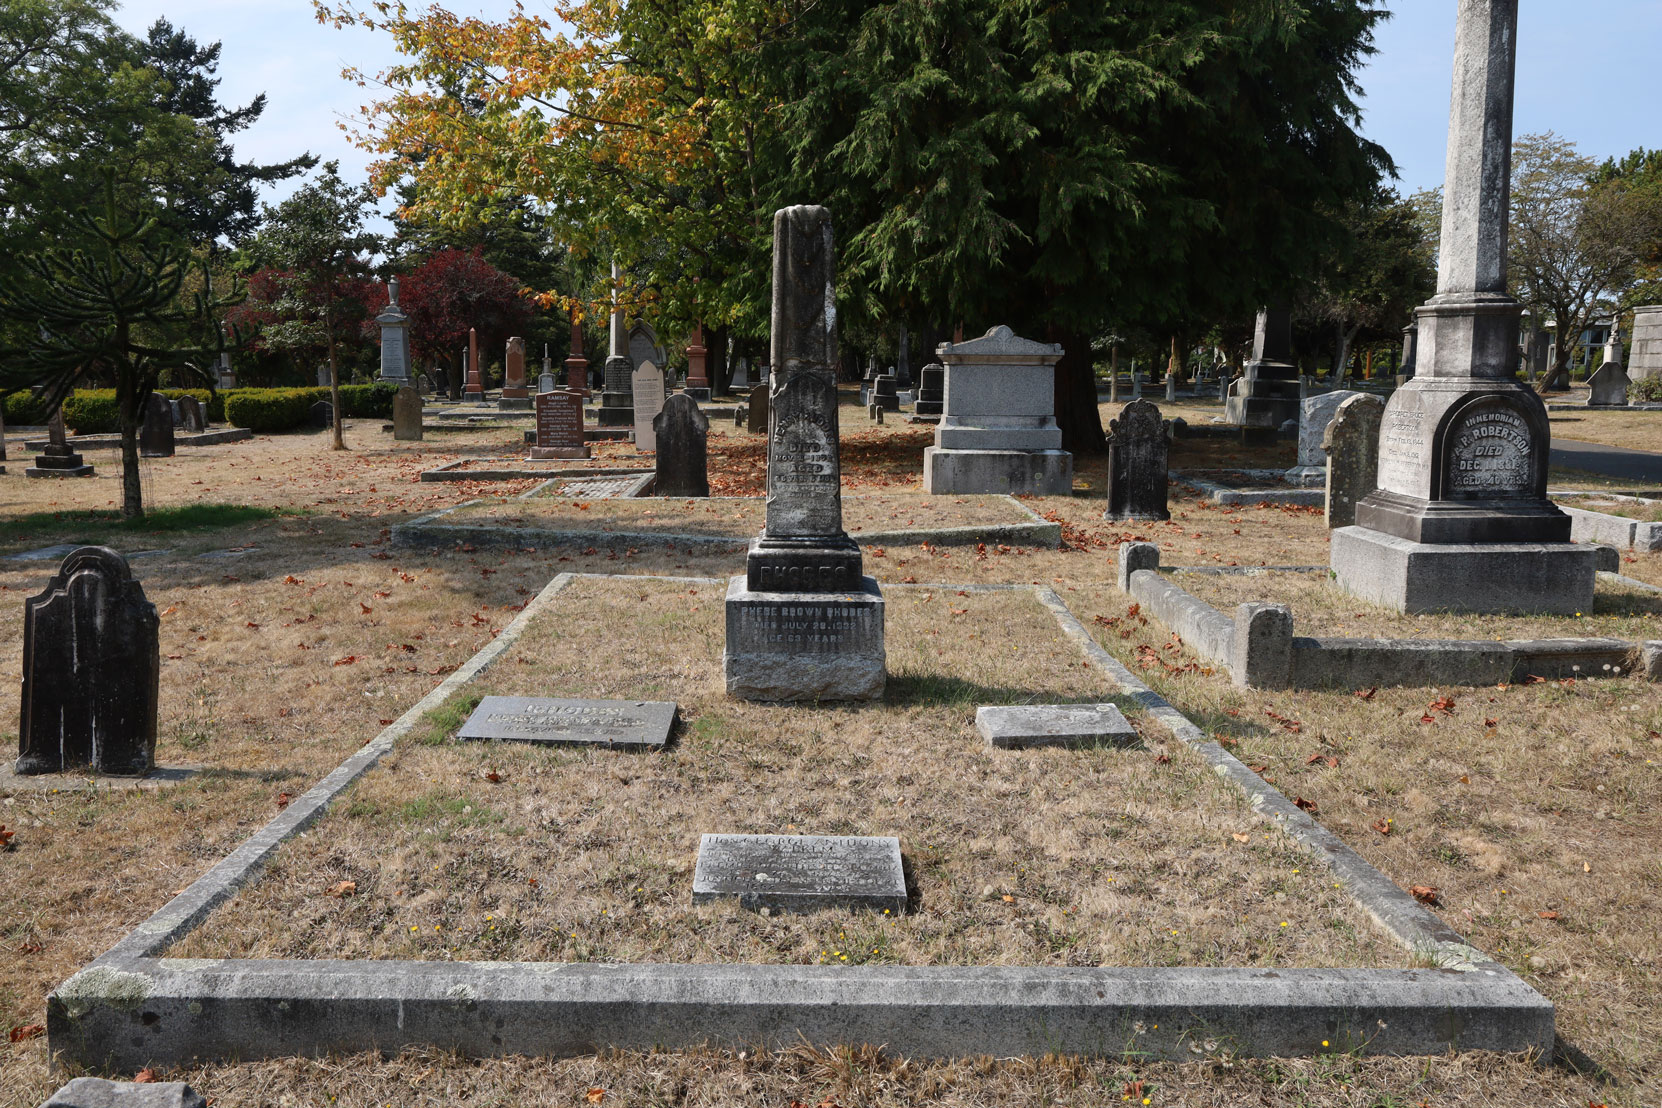 George Anthony Walkem gravestone (foreground) in the Rhodes family plot, Ross Bay Cemetery, Victoria, BC (photo: Temple Lodge No. 33 Historian)